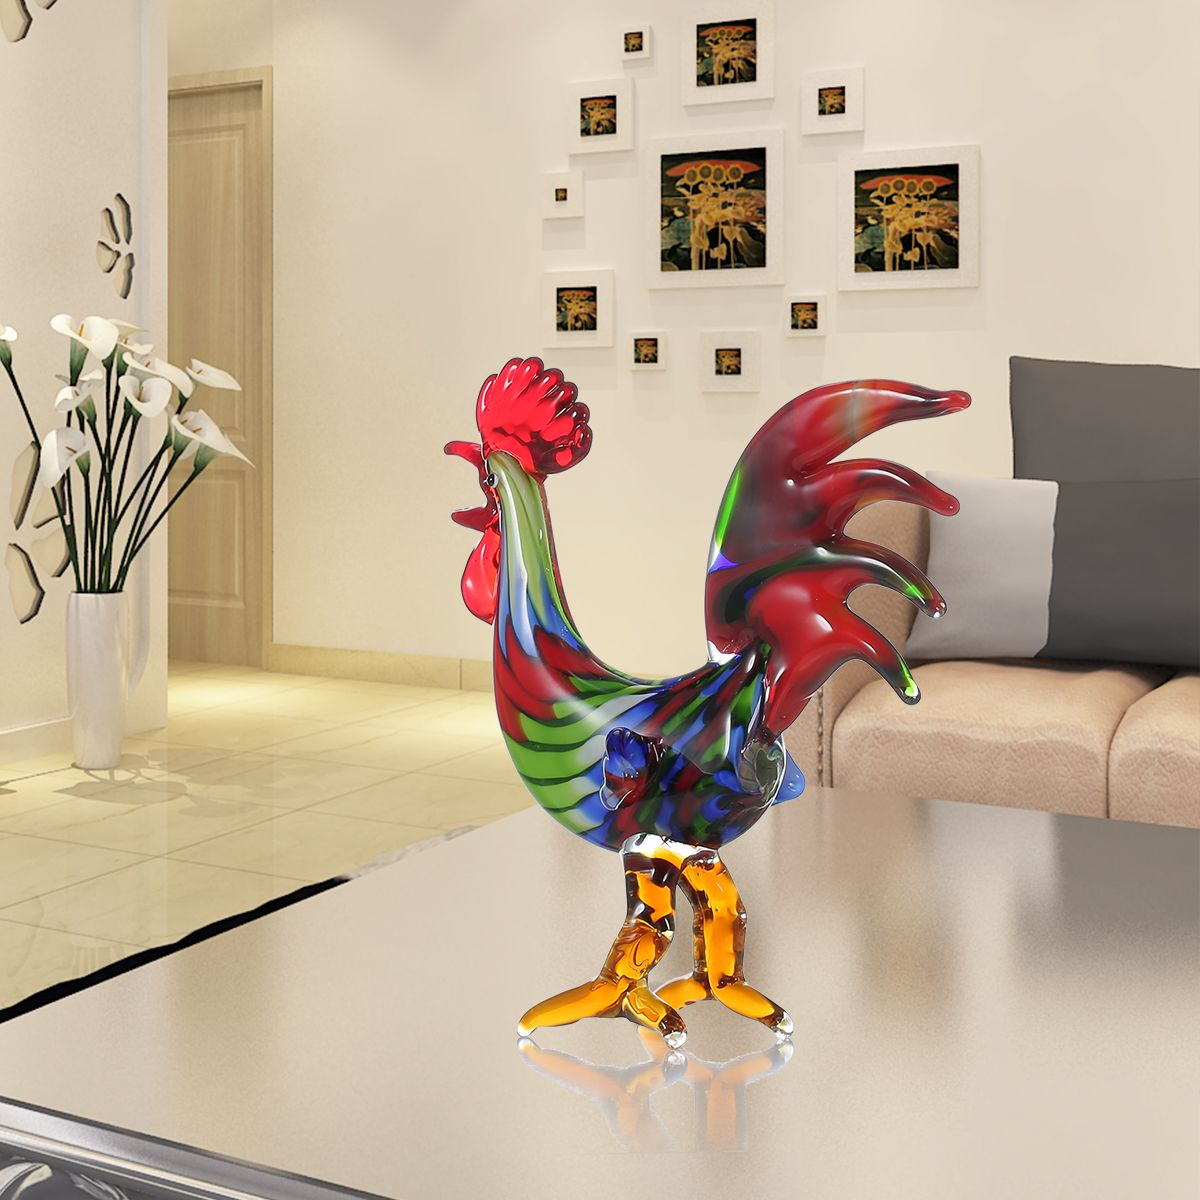 Valiant and Spirited Glass Rooster Colorful Rooster Glass Sculpture Room Home Desk Decor Animal Ornament Gift